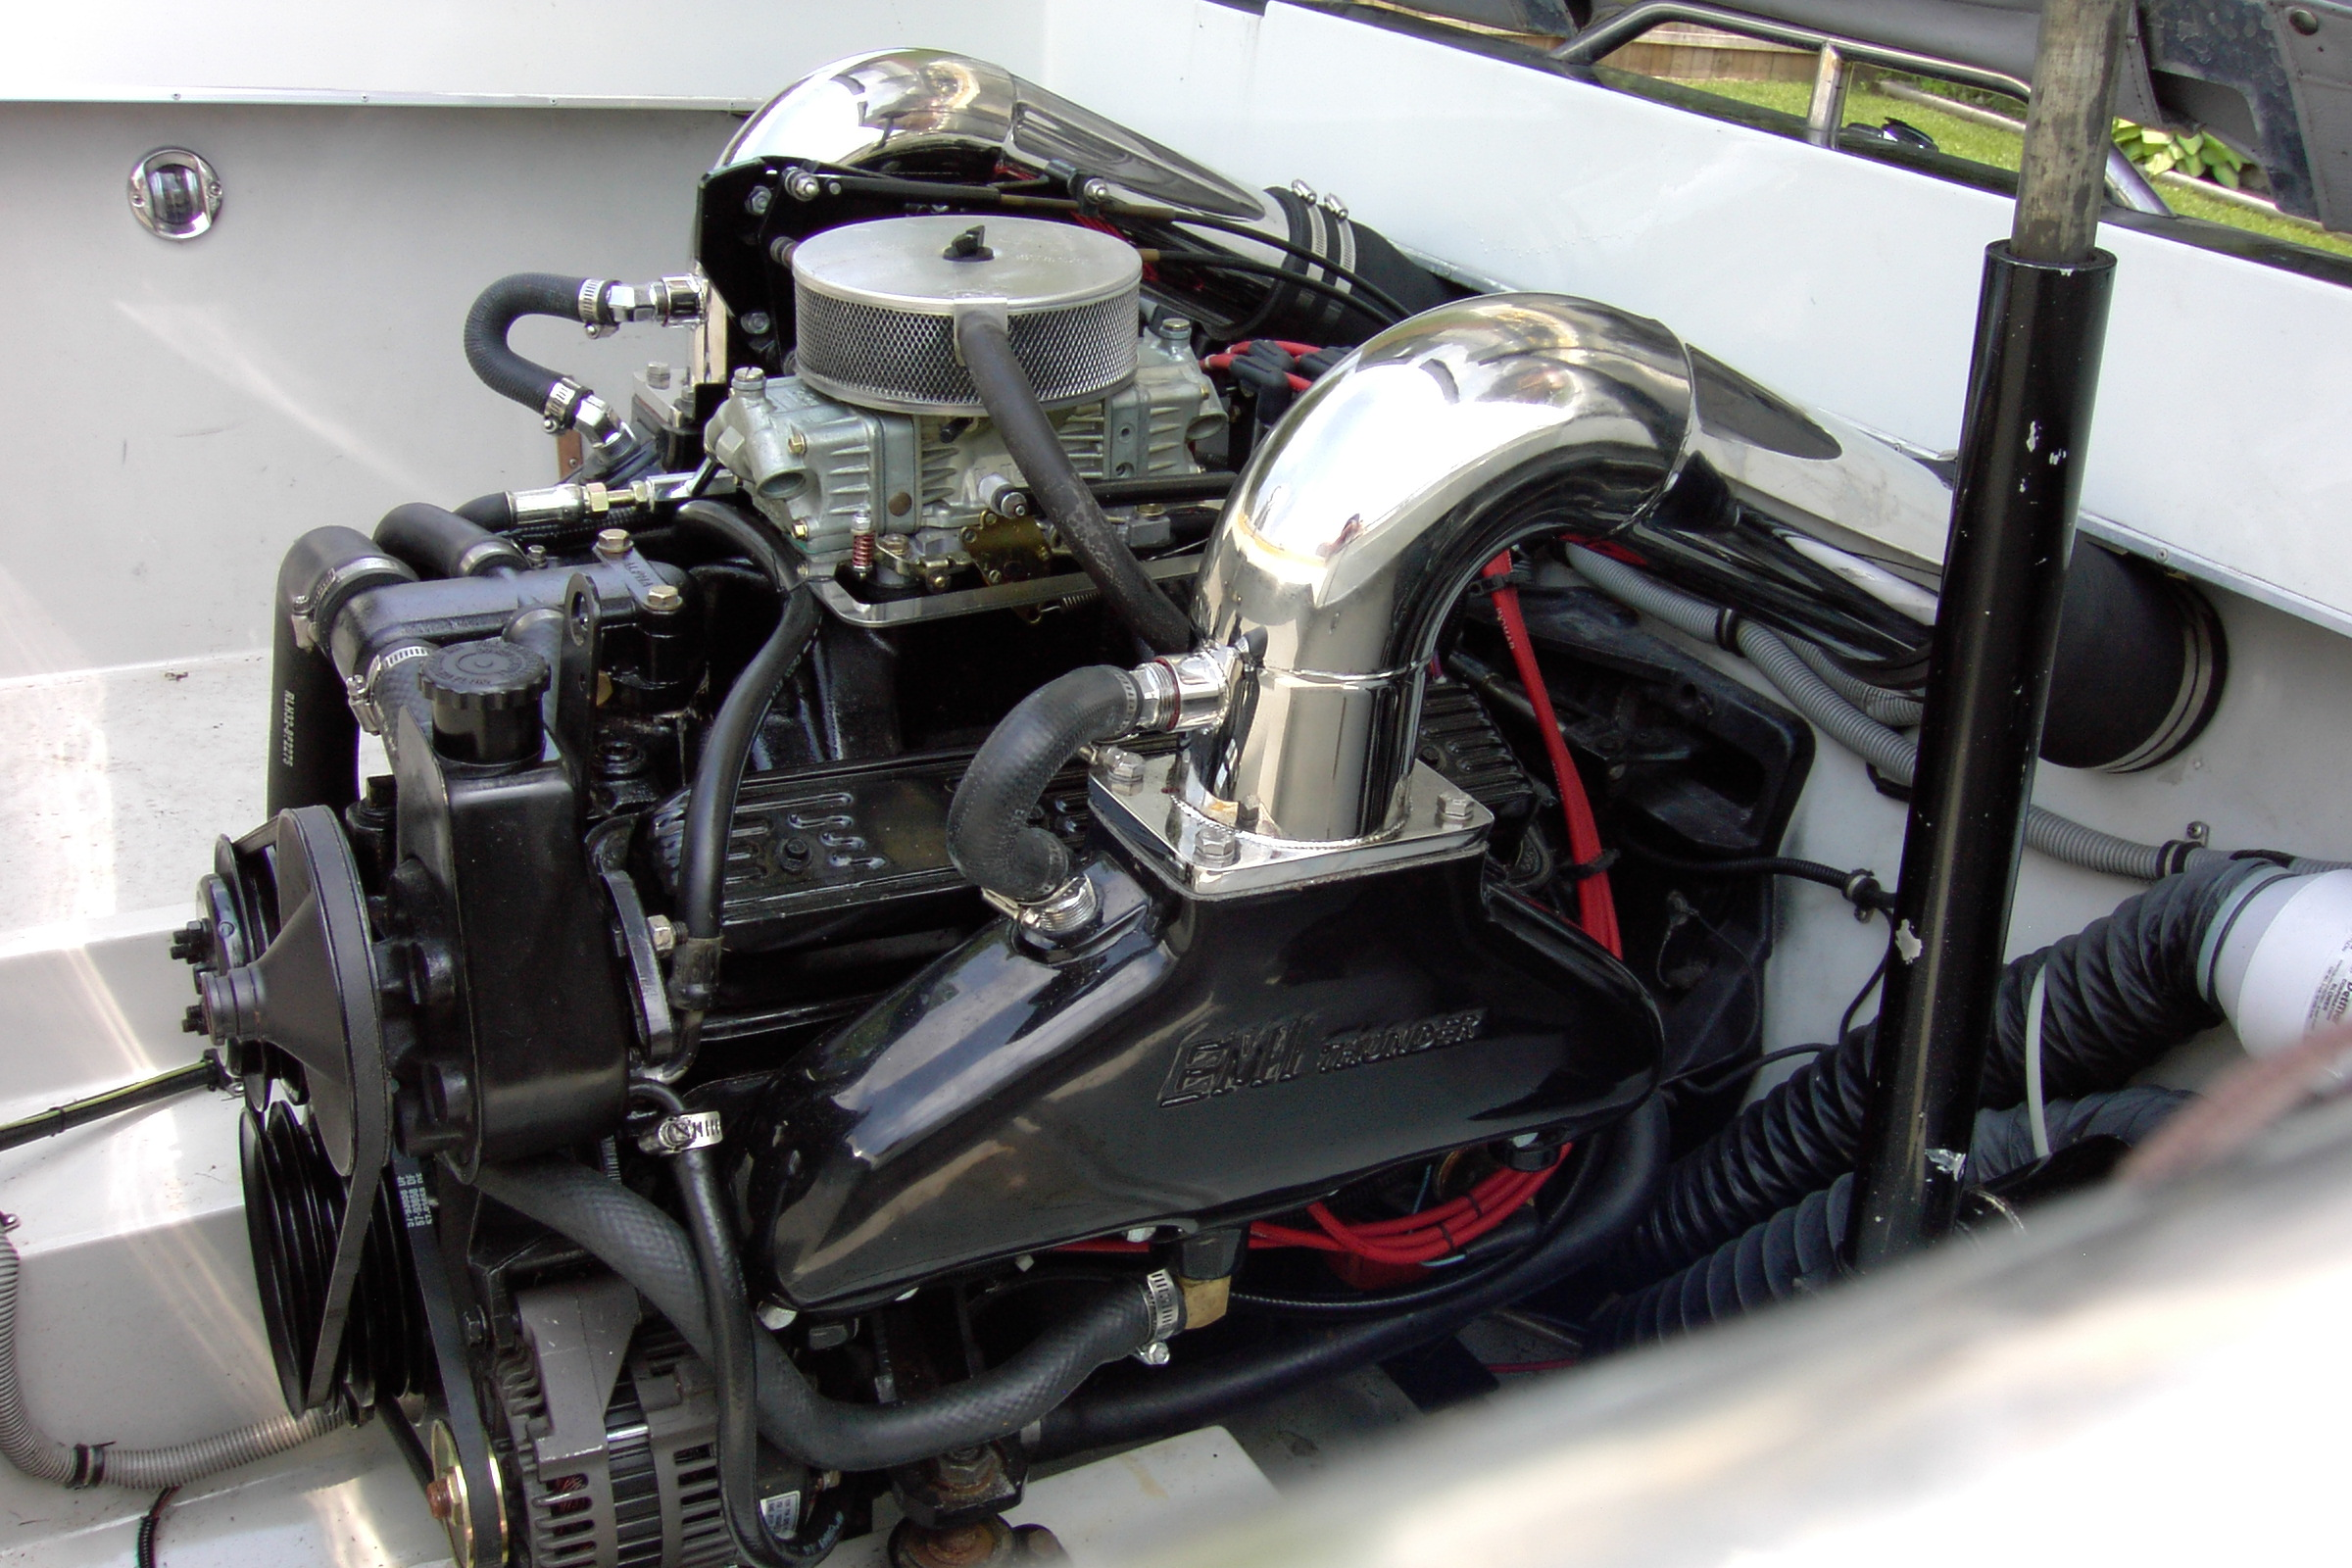 Michigan Motorz - Comprehensive inventory of new and remanufactured engines.